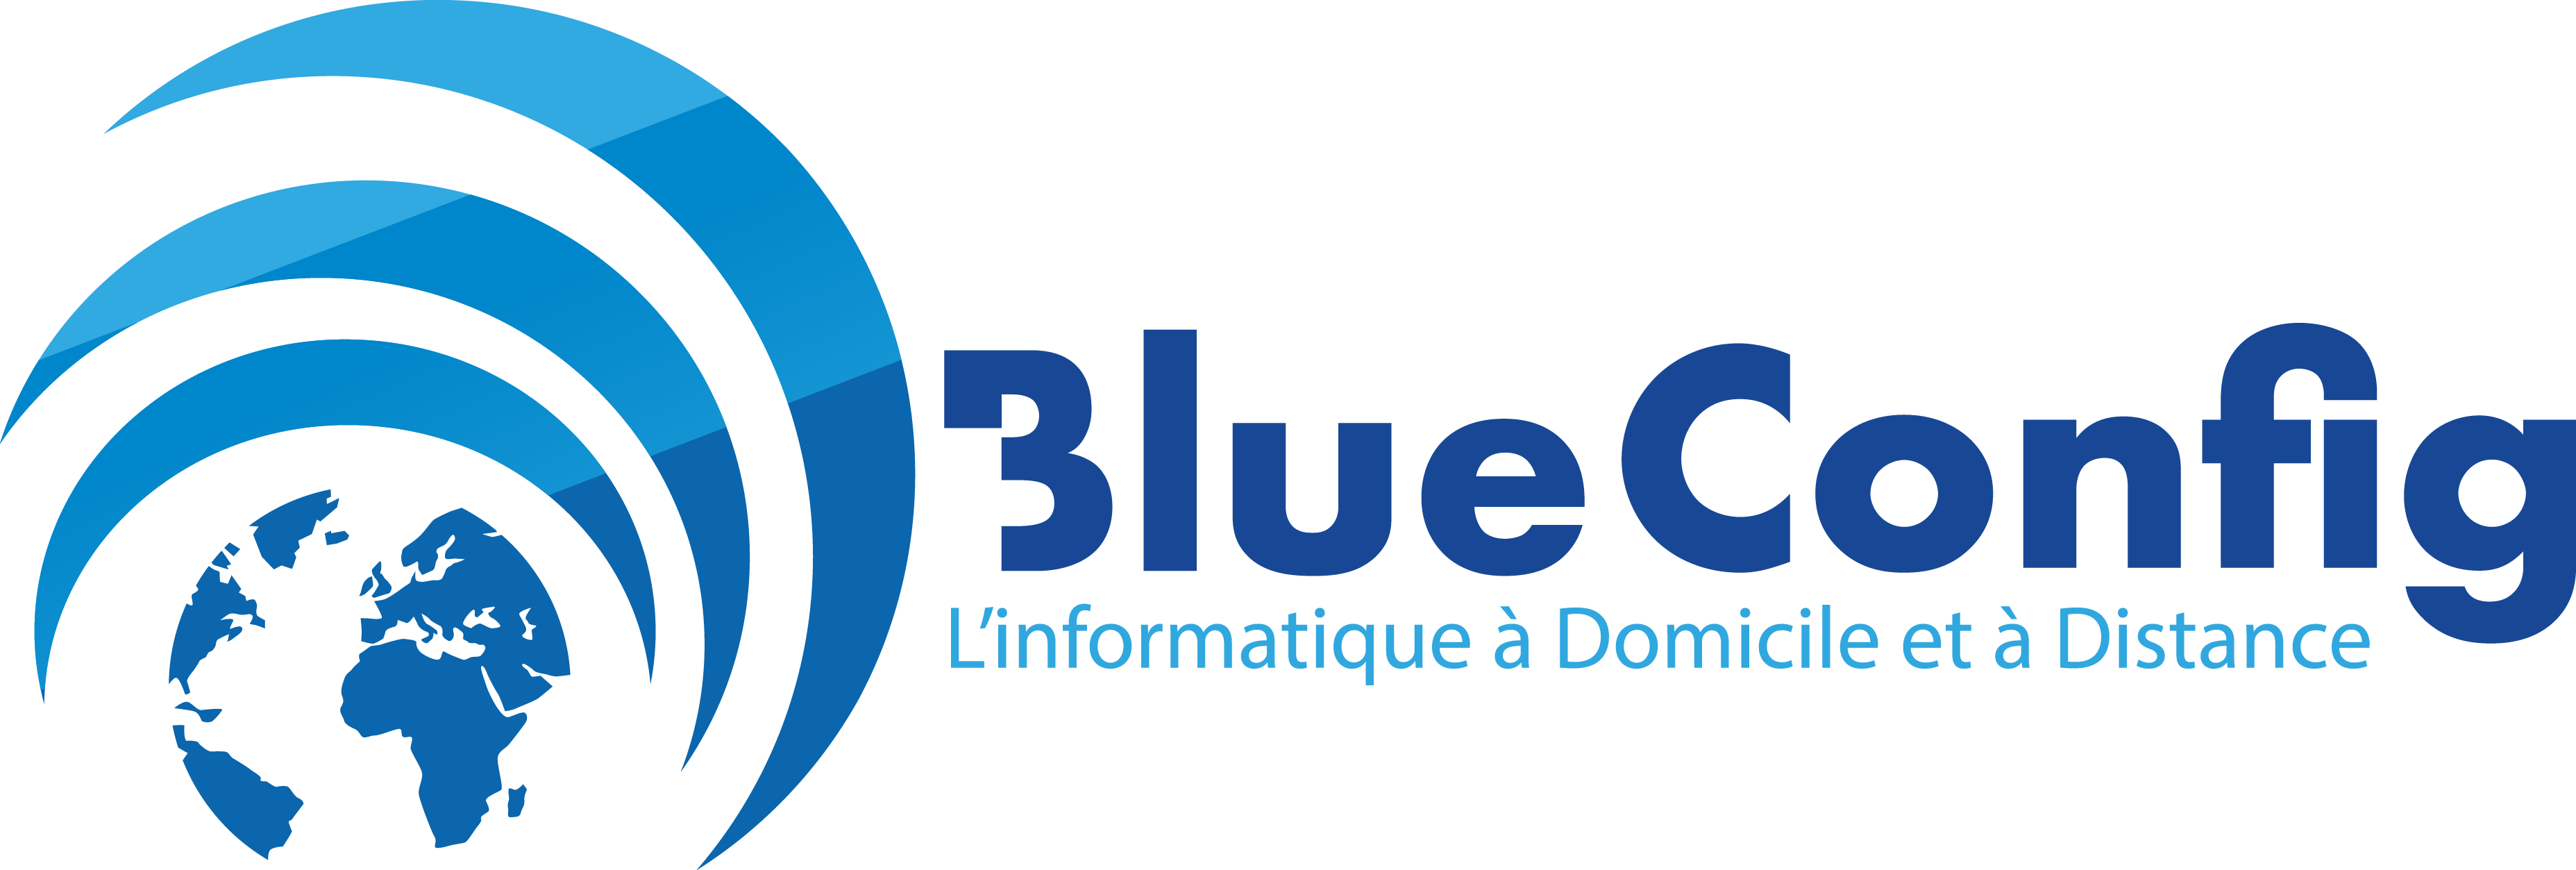 BlueConfig Informatique